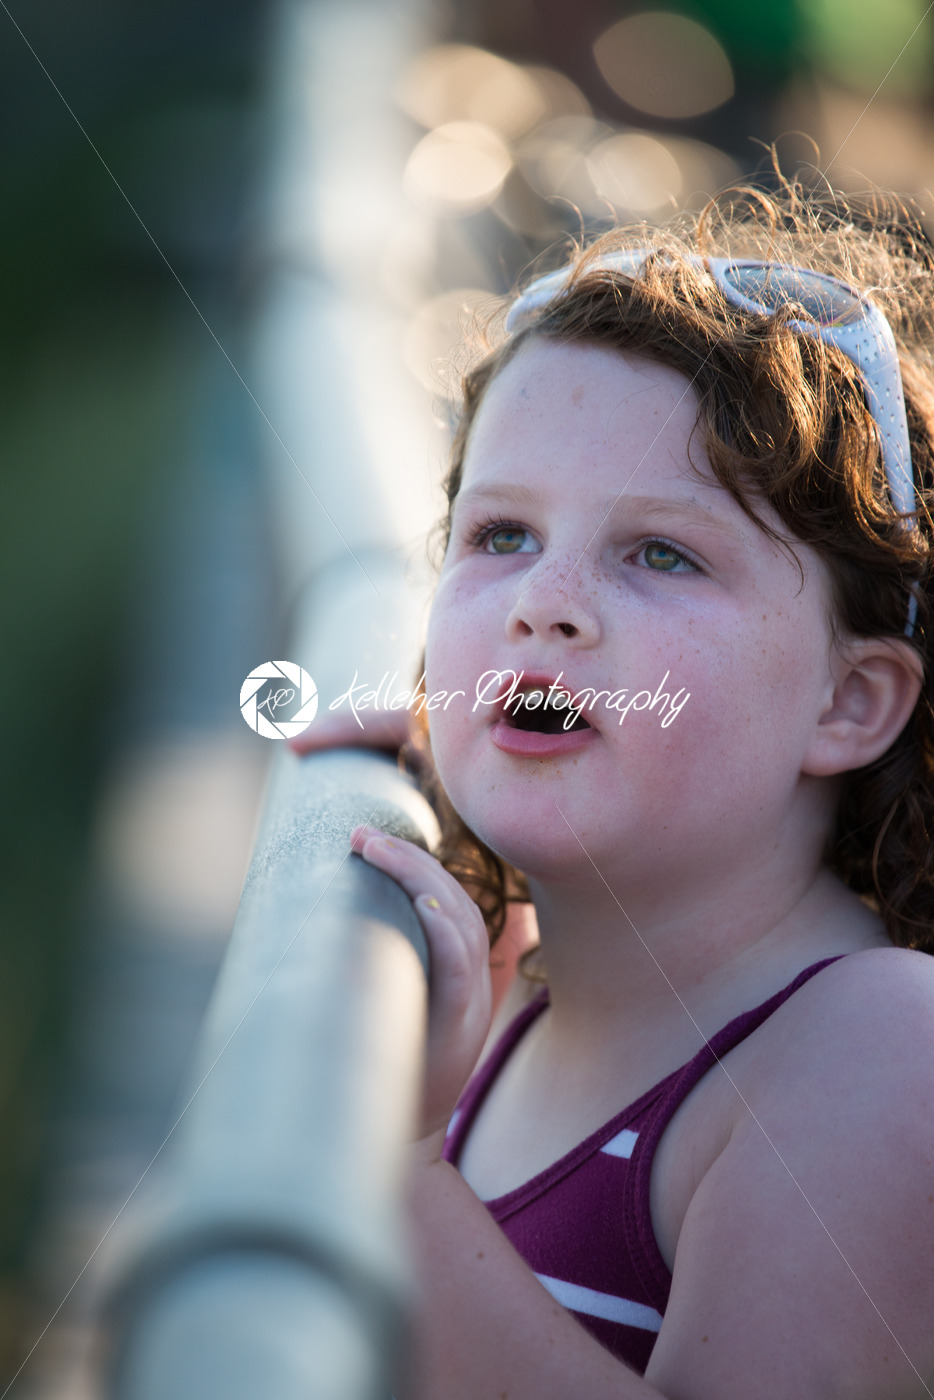 Young cute little girl on the boardwalk looking up - Kelleher Photography Store